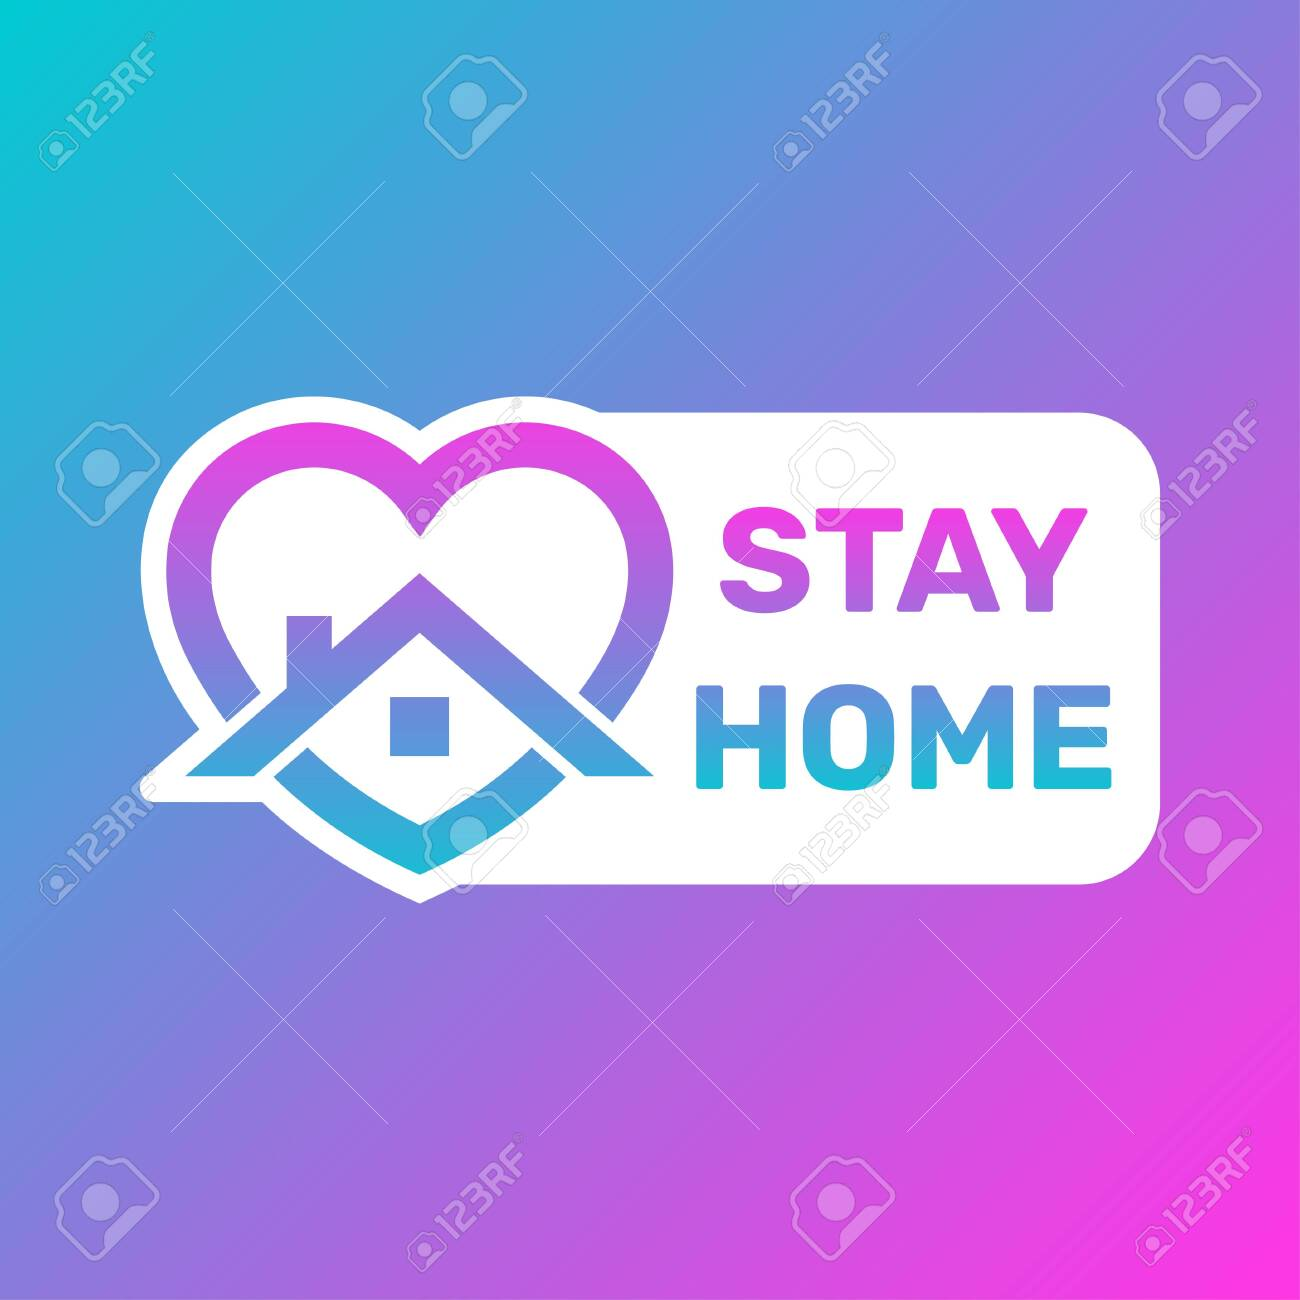 Stay Home Icon and Button, Stay home sticker story, House with heart shape, love stay at home care symbol, vector illustration isolated on white background in trendy style. - 145260490